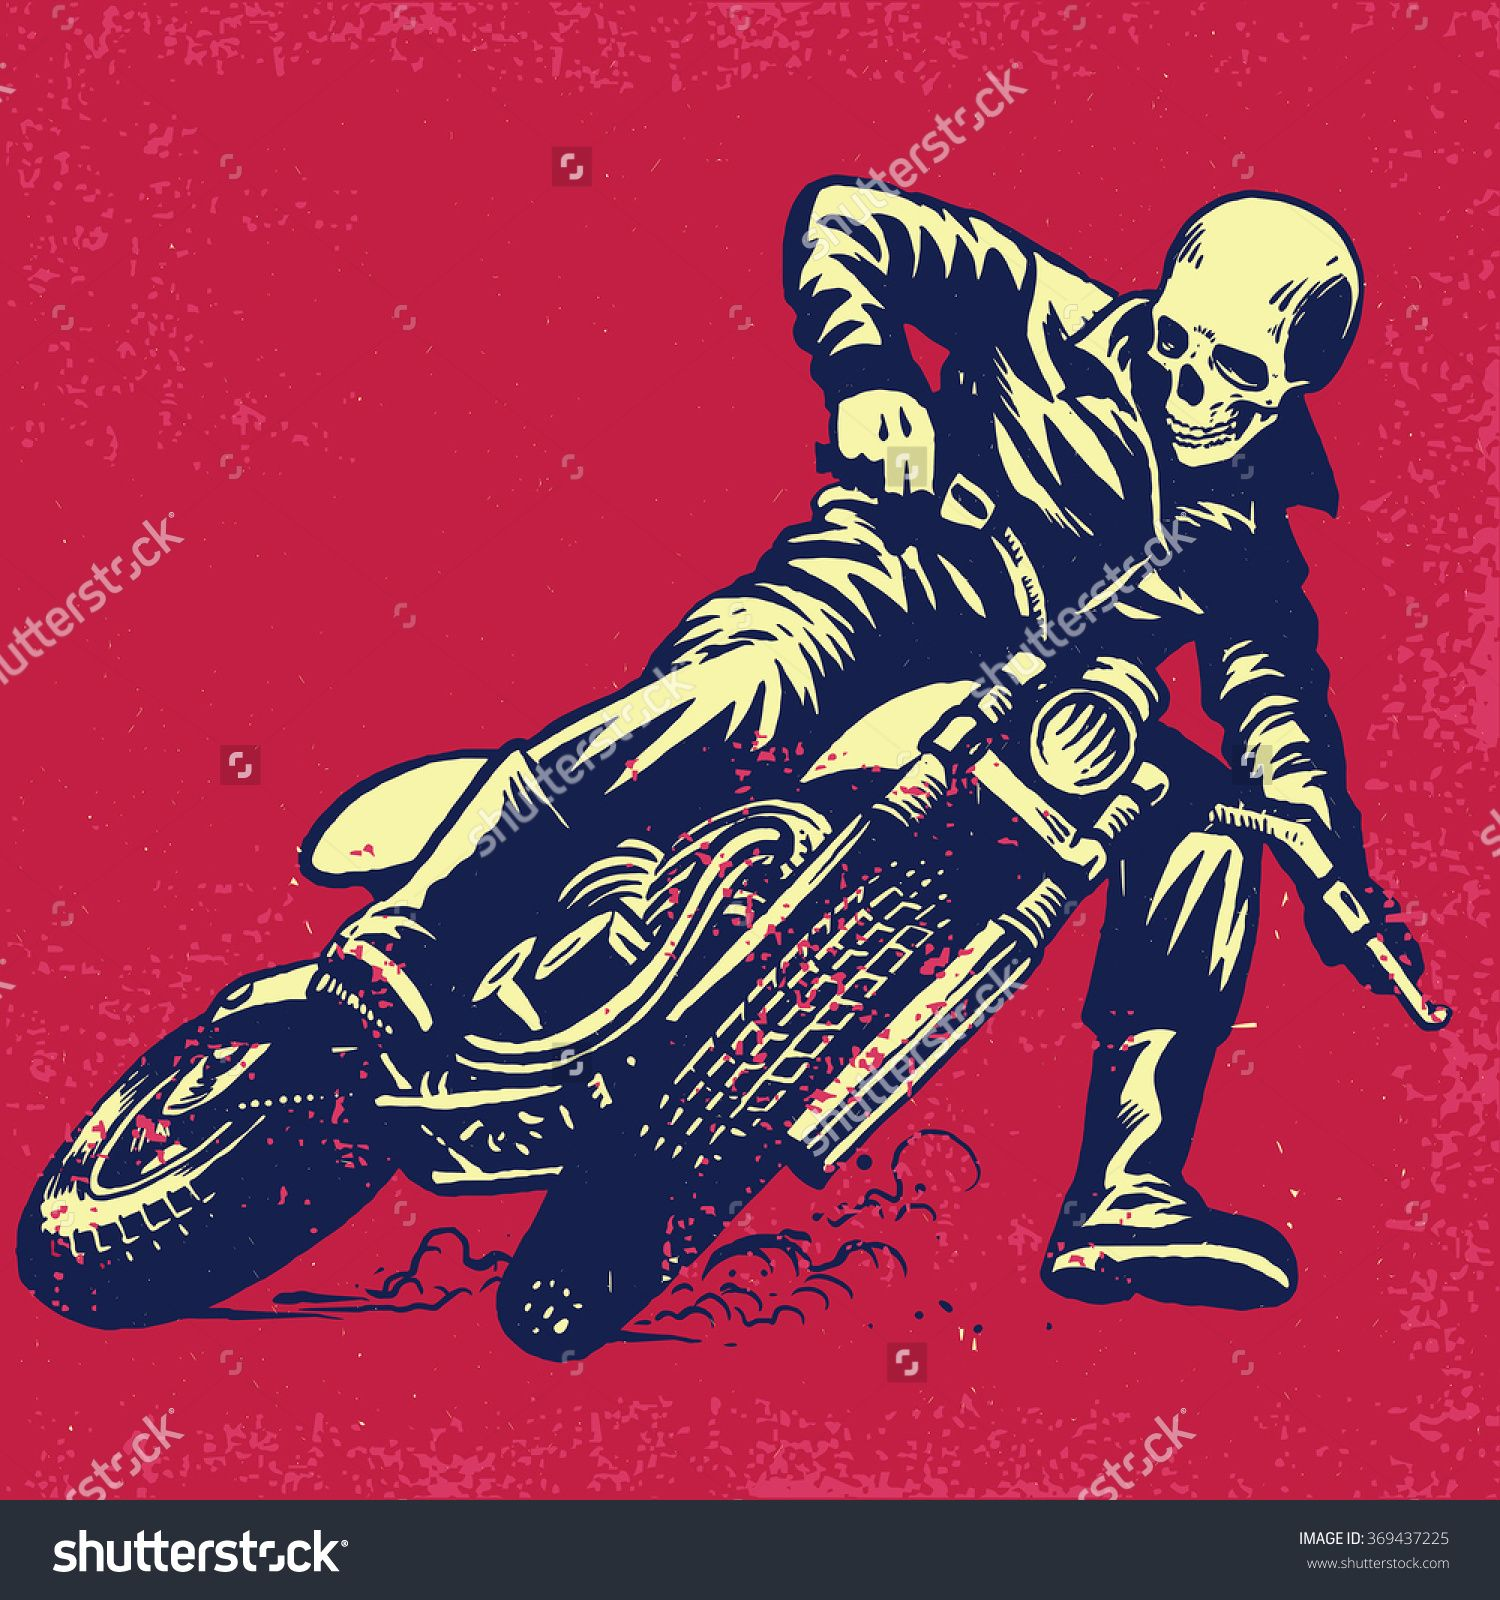 Hand Drawing Of Skull Riding A Vintage Motorcycle, Texture